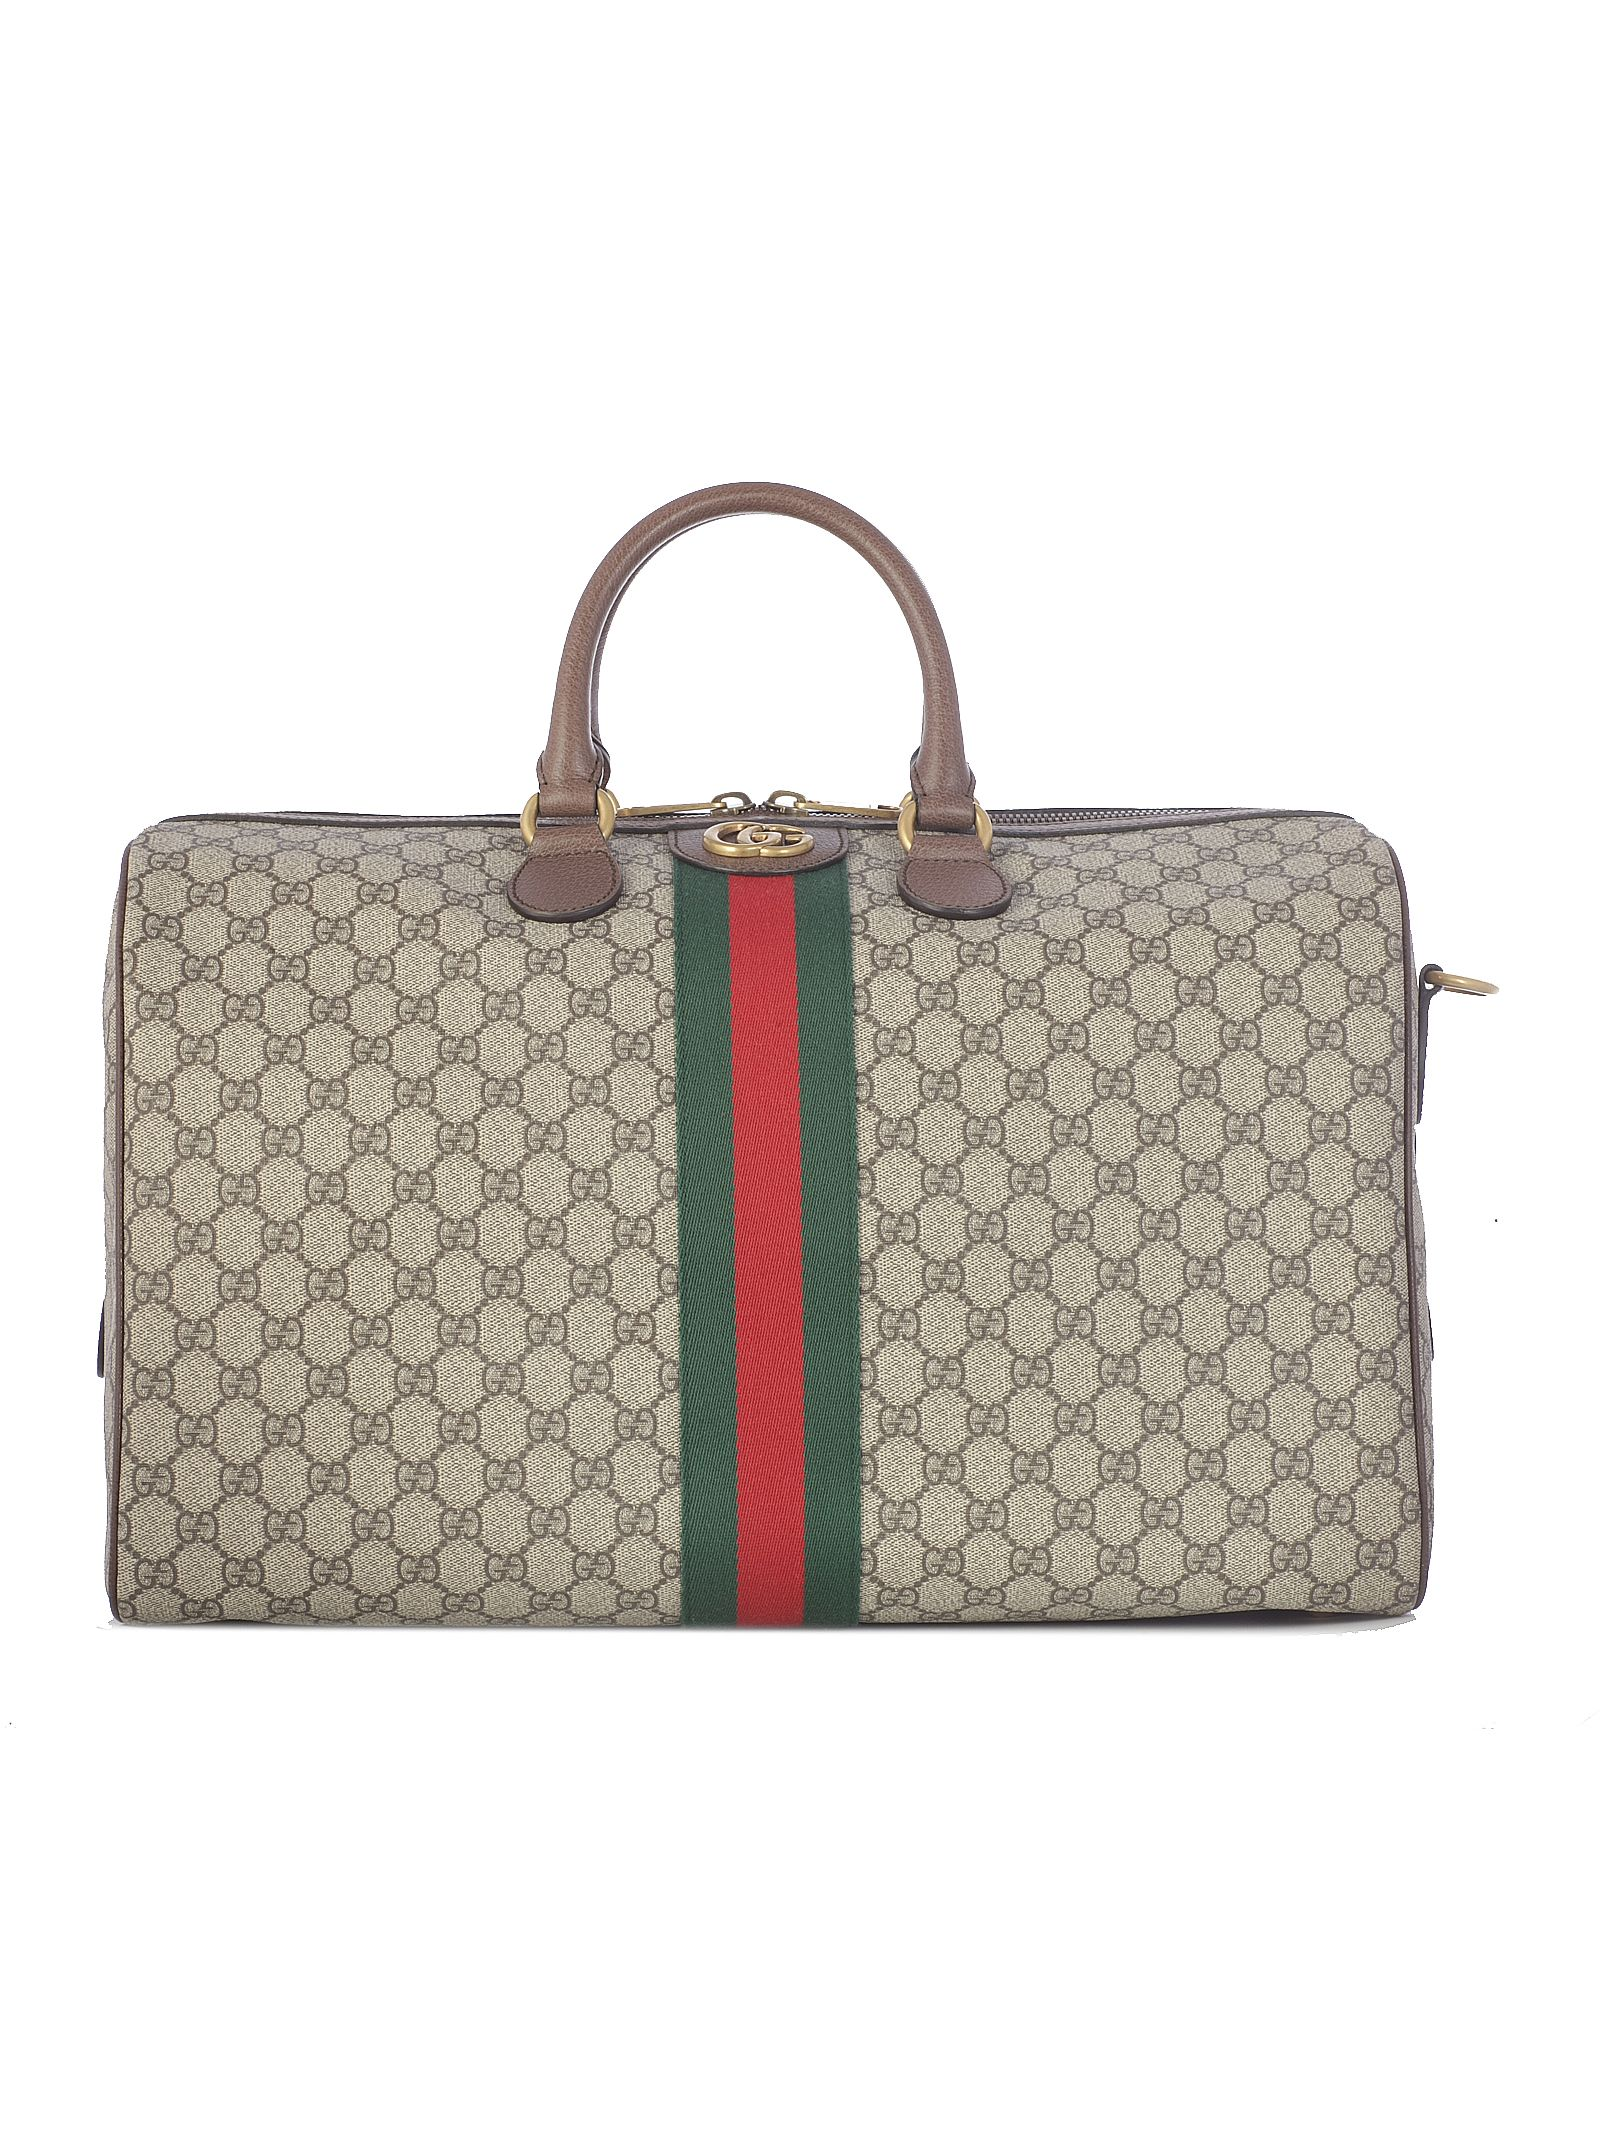 bce13327cff5 Gucci Gucci Ophidia Gg Holdall - Beige Ebony Acero - 10801459